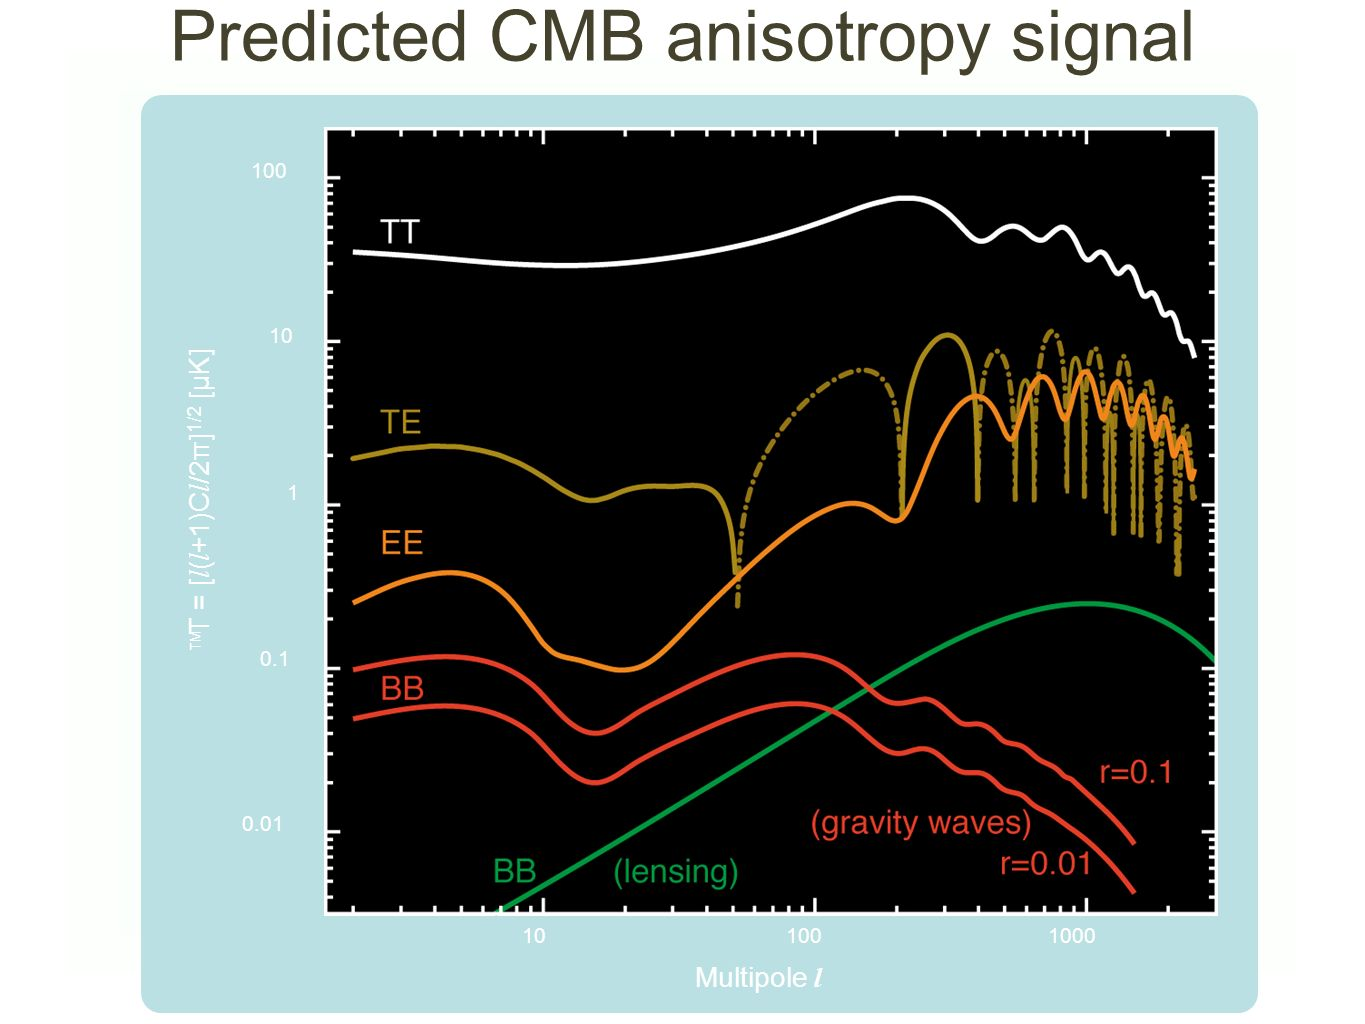 Predicted CMB anisotropy signal